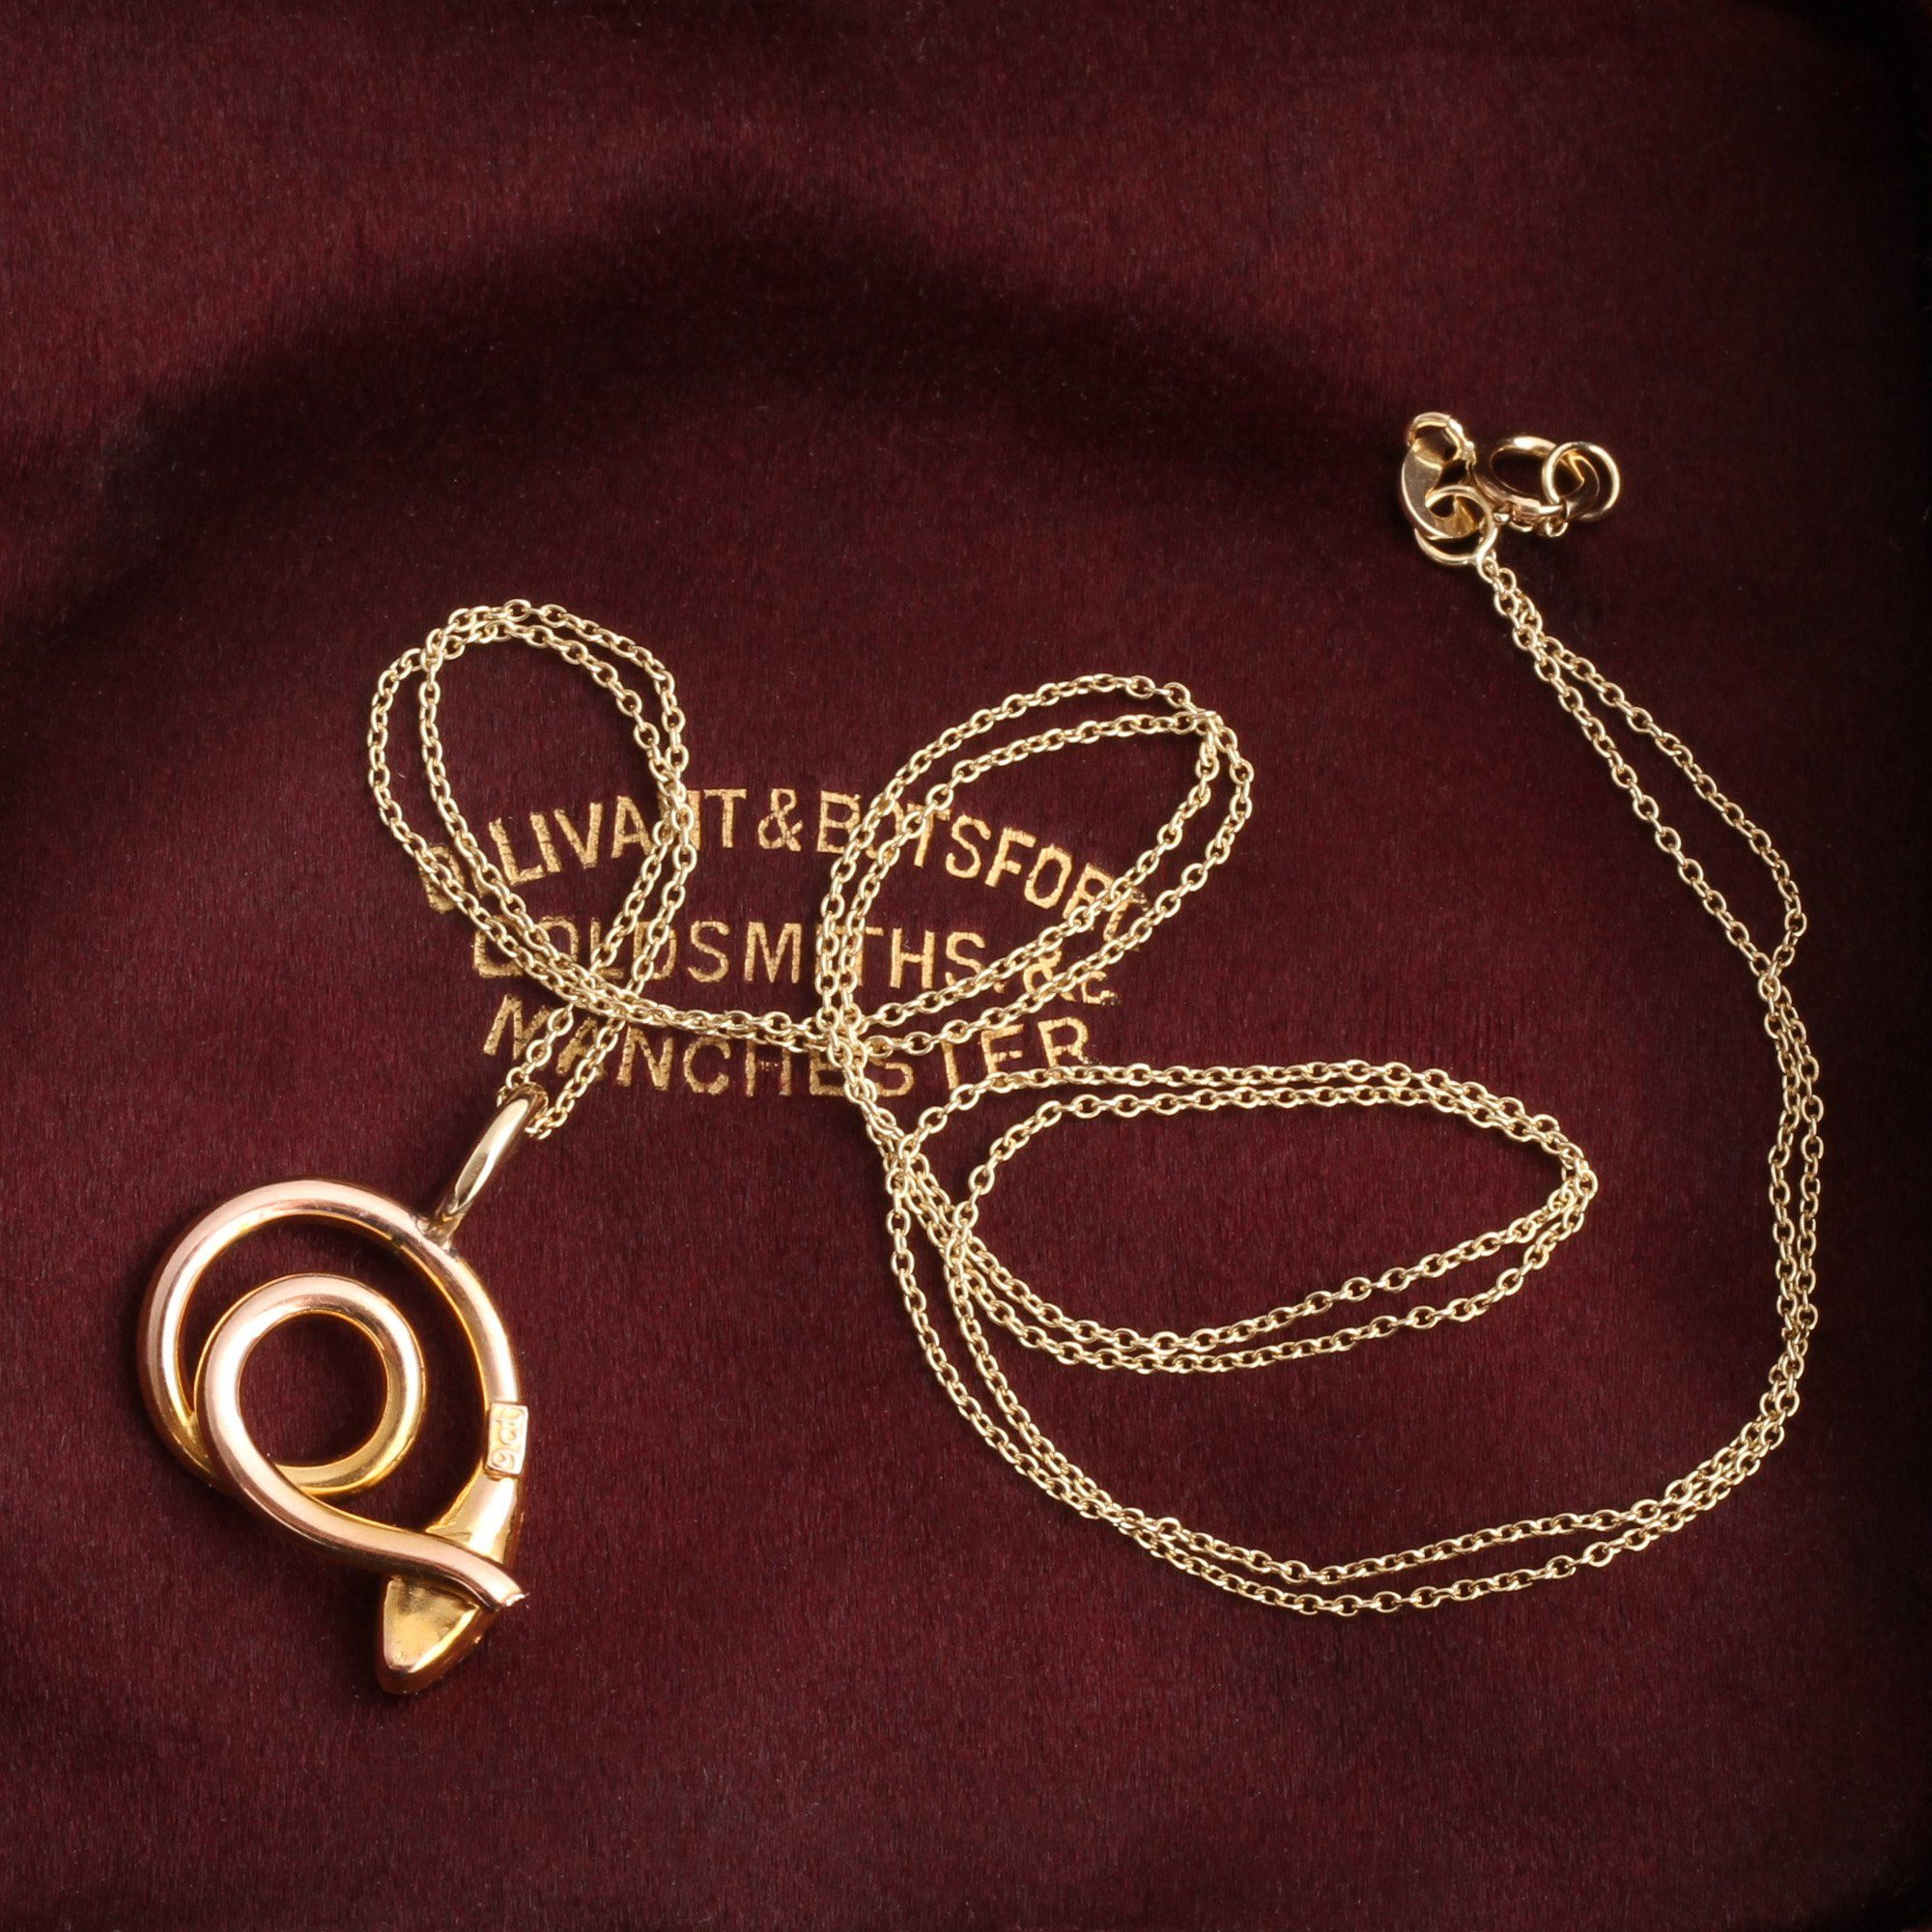 Victorian Coiled Snake Charm Necklace